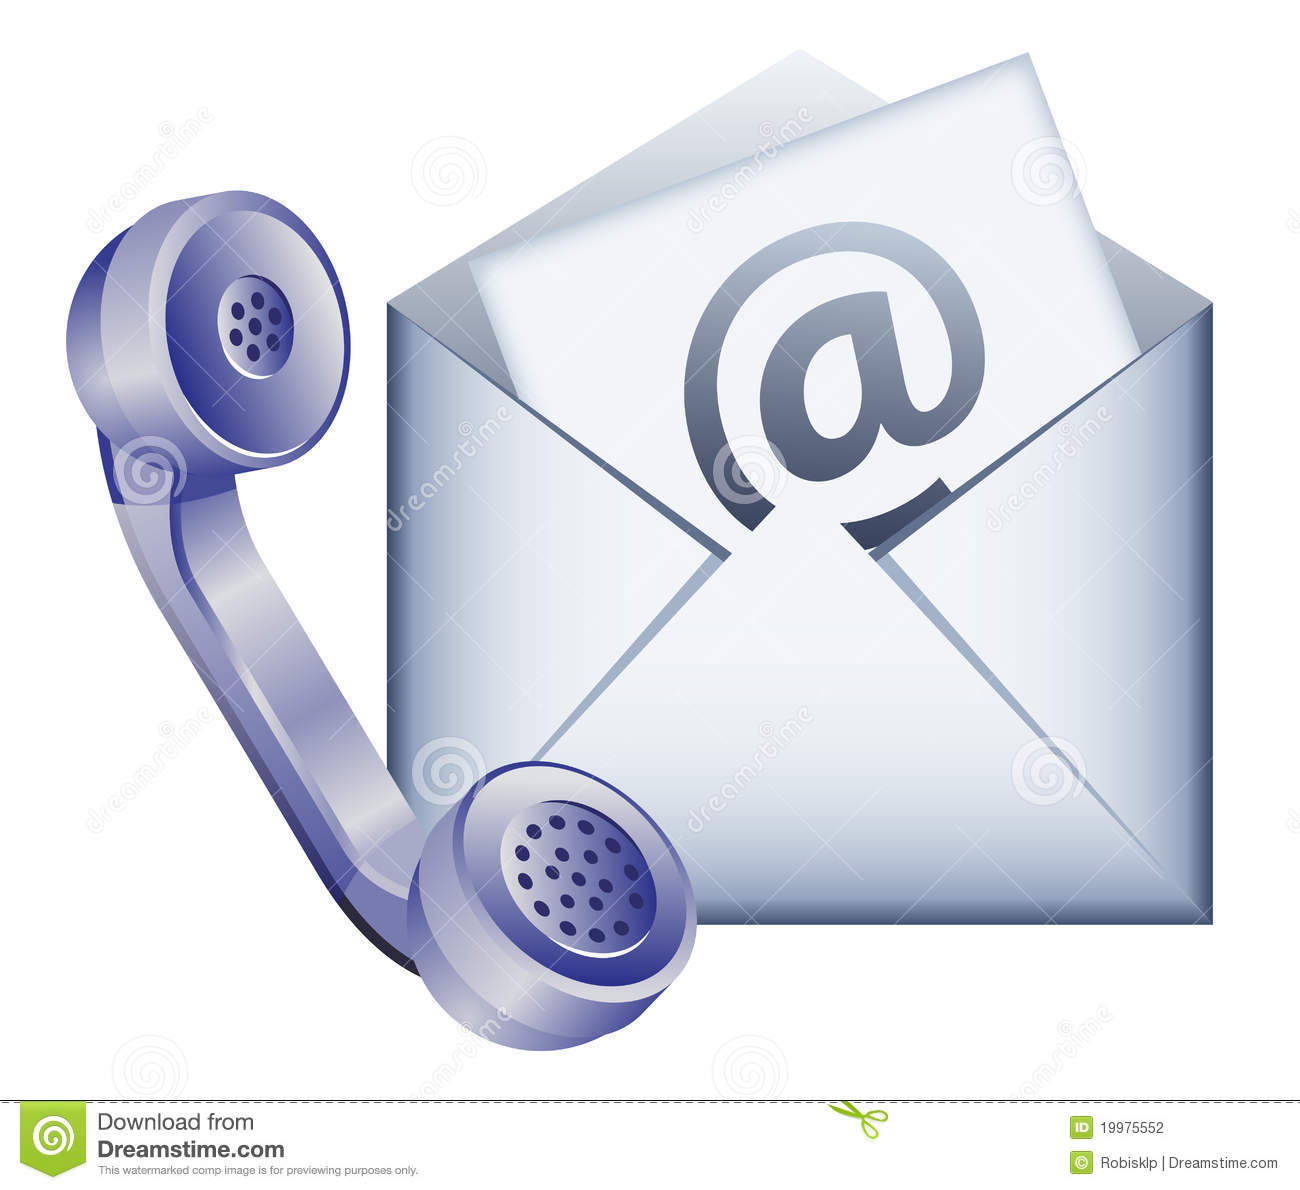 Phone receiver and envelope - contact us by email icon.